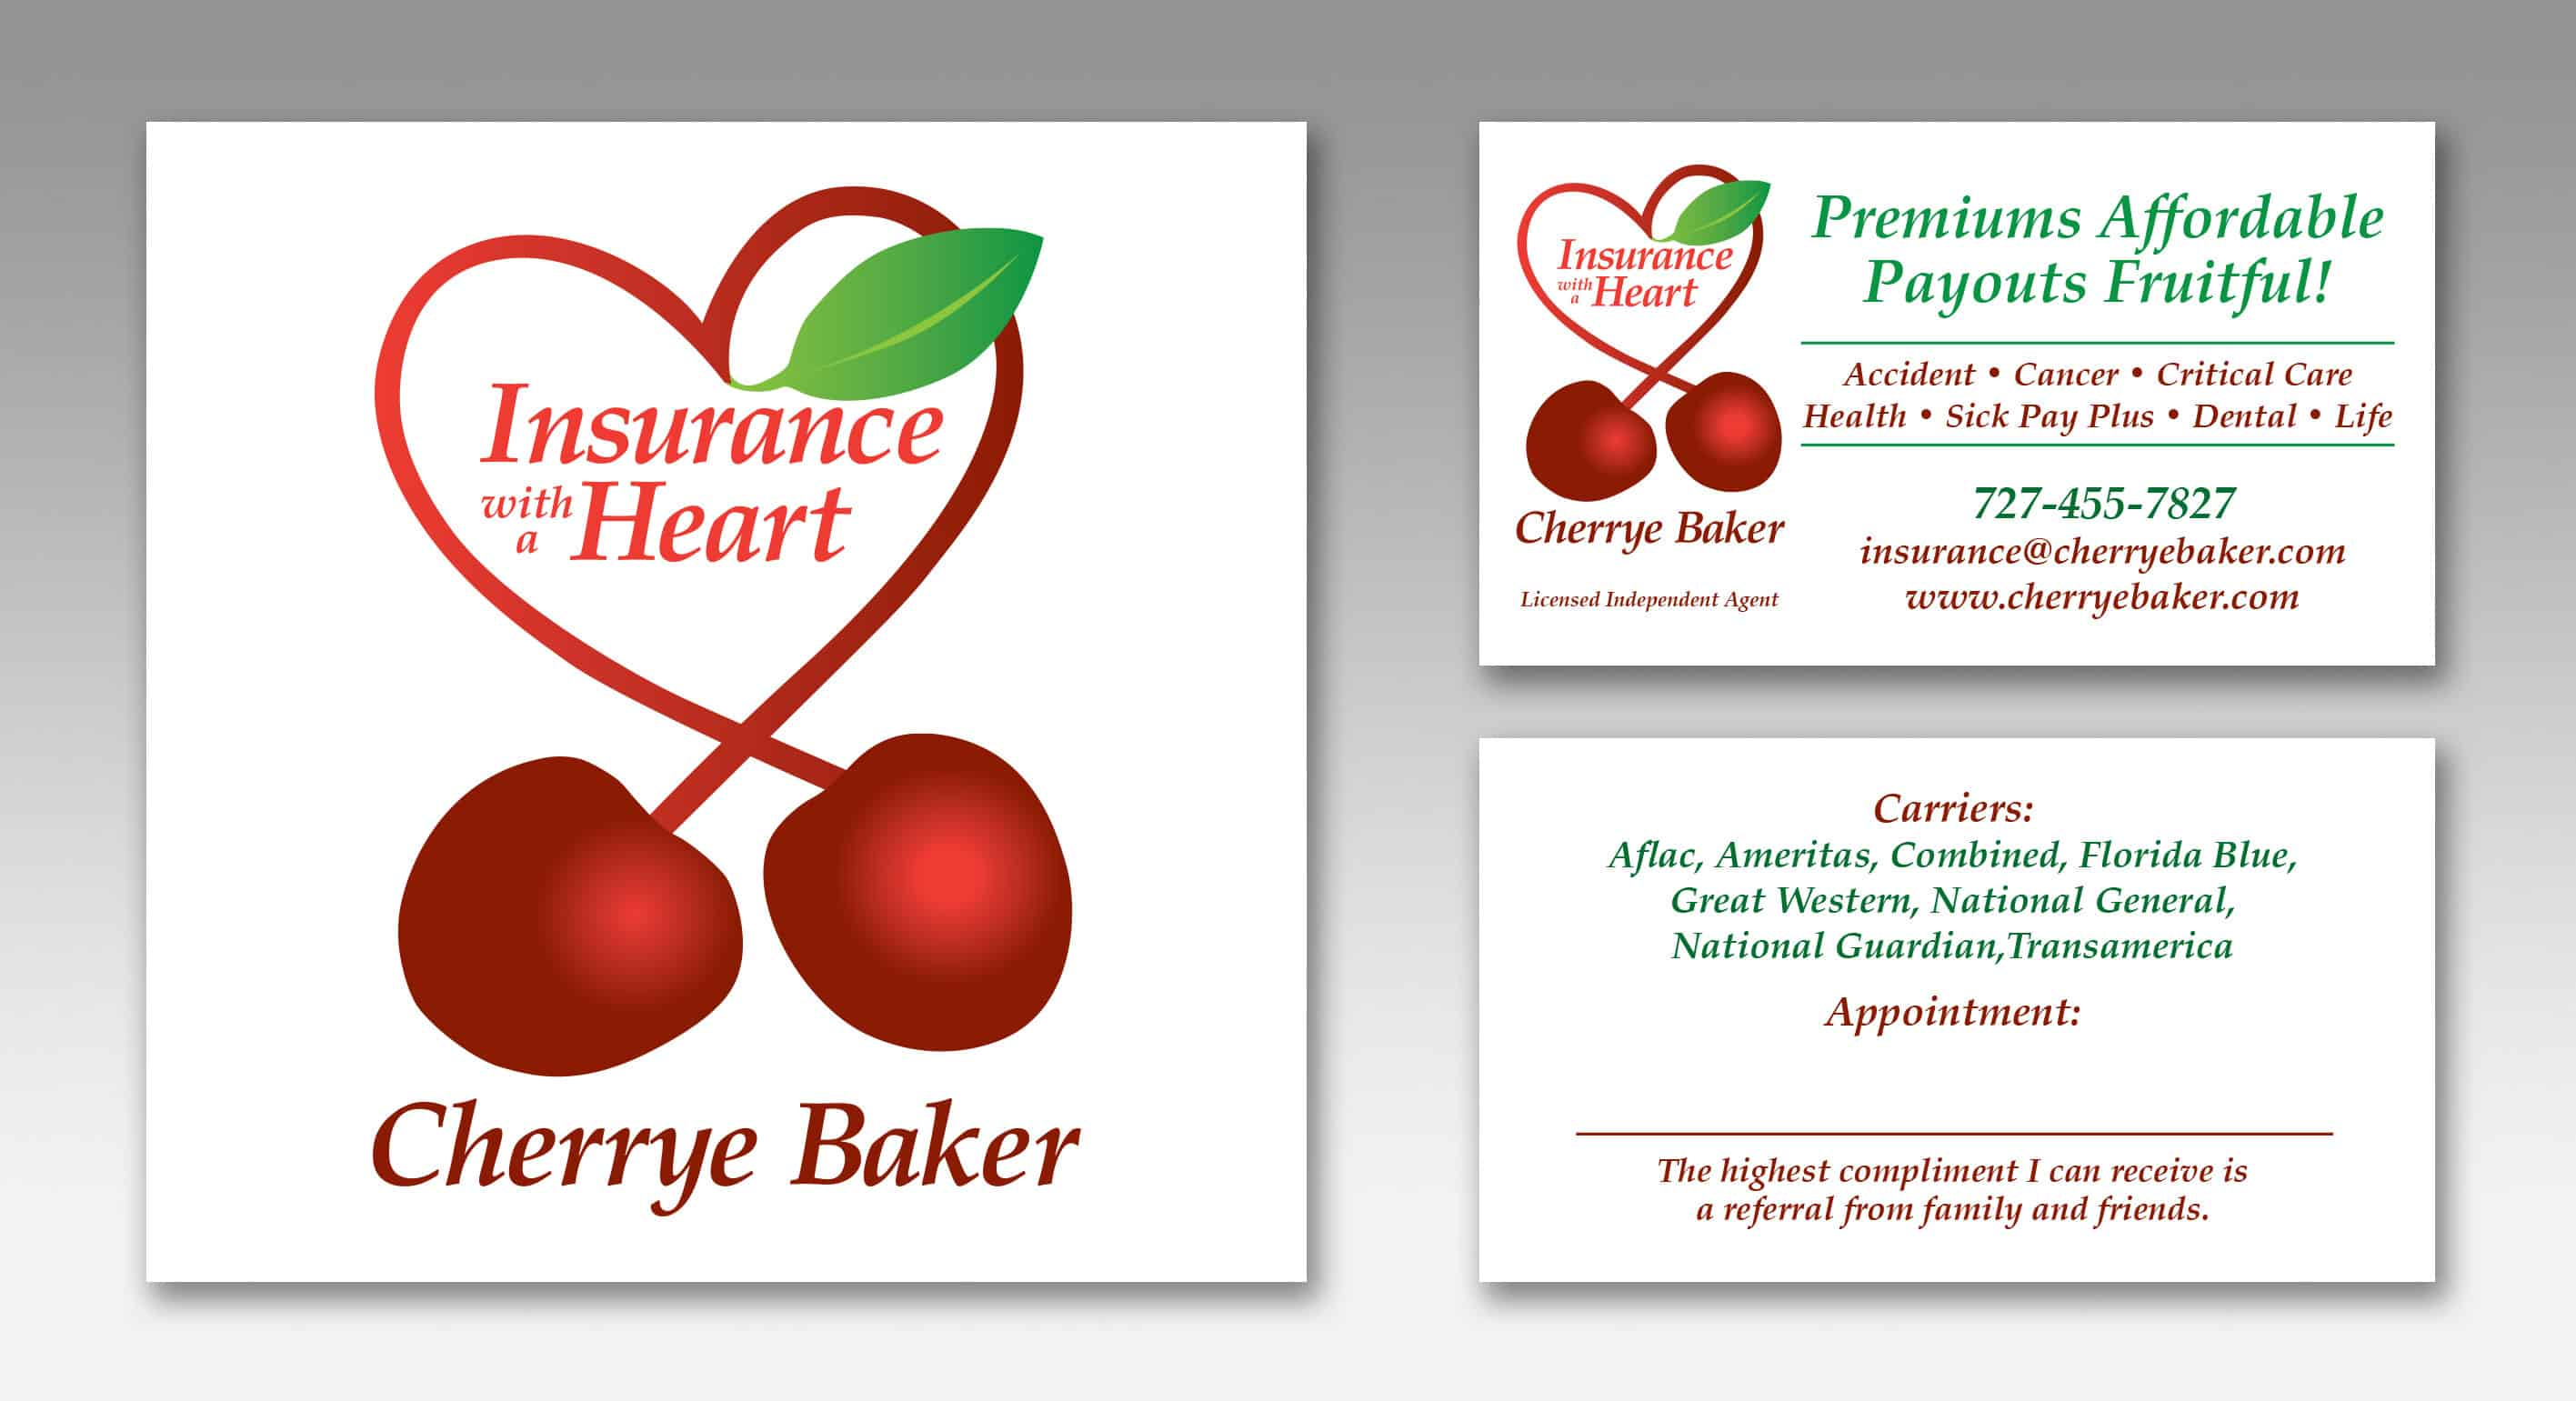 Cherrye Baker, Insurance with a Heart